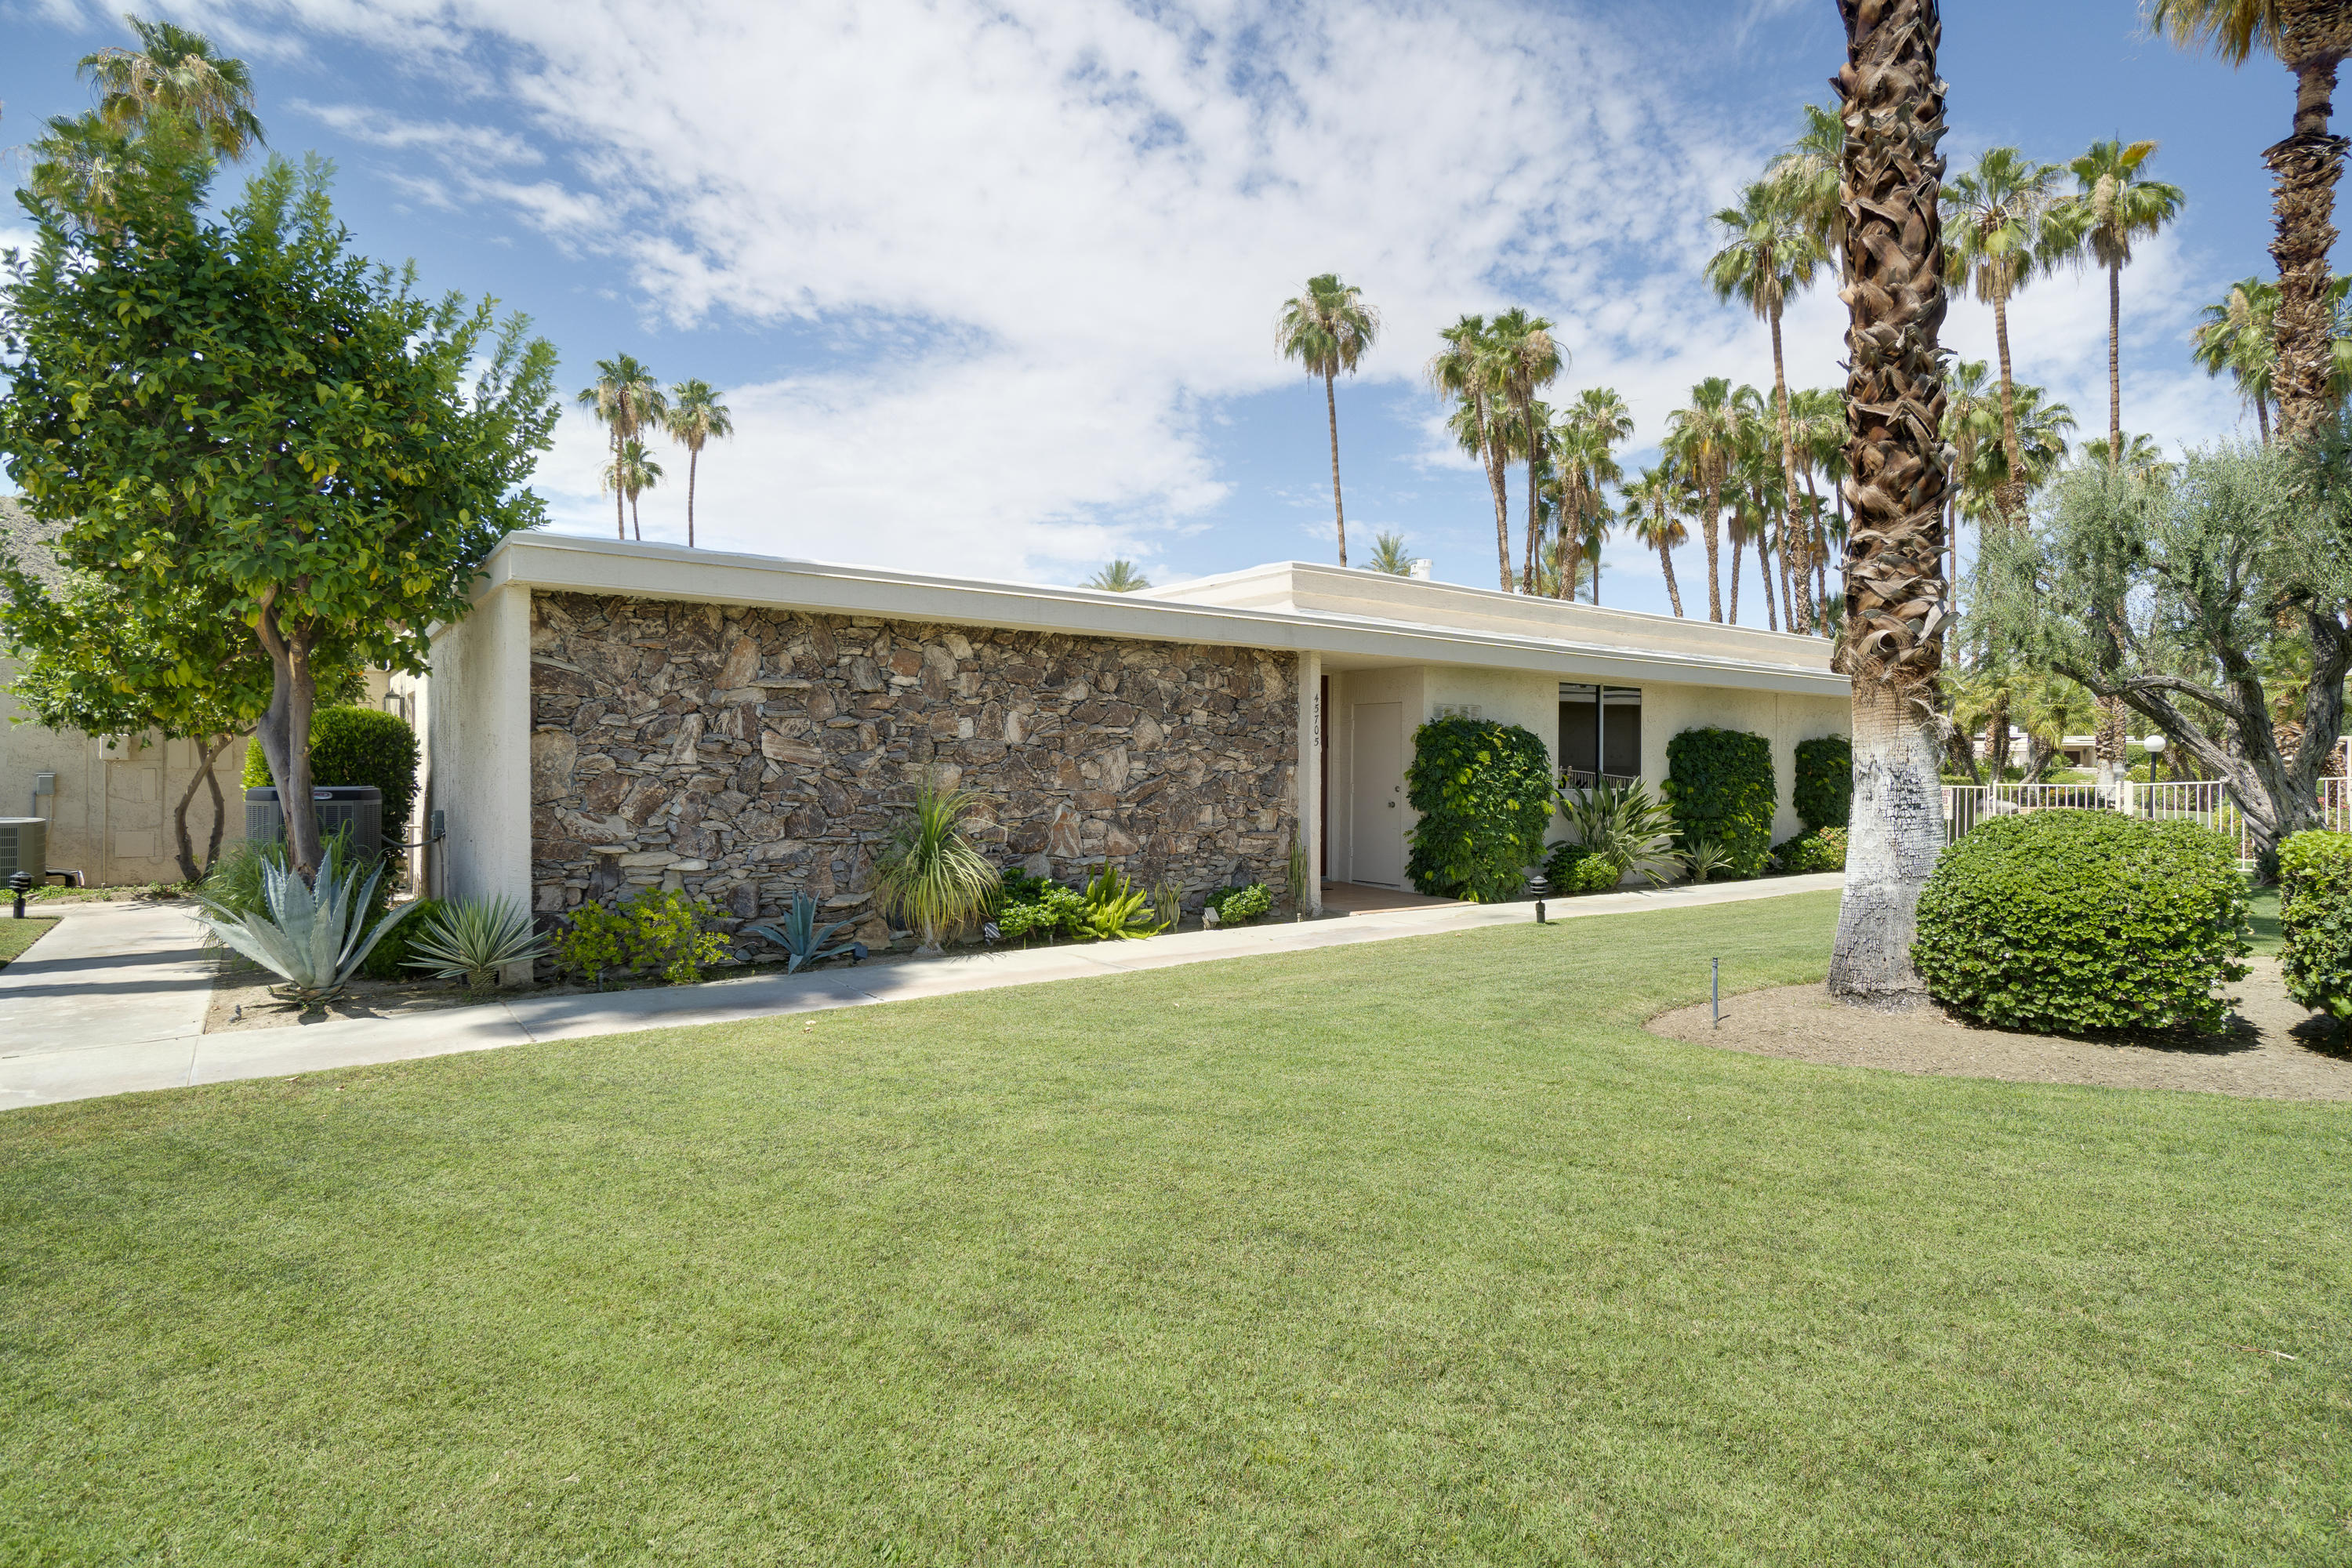 Rare Indian Wells Villa designed by architect William Krisel within the Indian Wells Country Club. This unique condo is a U shape surrounding an atrium that fills the home with light and provides an outdoor patio larger than most living rooms. Generous size rooms looking out to the mountains, large, meticulously maintained greenbelt area and community pool. The large living room is enhanced by a floor- to- ceiling rock fireplace; built-in entertainment center and wet bar. All bedrooms have ensuite baths; walk-in closets and open to an atrium or patio. The atrium is accessed through a beautiful, hand-crafted door. The garage is 2 car plus golf-cart space with ample storage. One New top of-the-line 25 Seer Lennox HVAC newly installed and second AC installed two years ago. Hospital grade HEPA Filtration system; New roof installed and warranty transfers; freshly painted throughout. New flooring in the entry; kitchen; powder room; master bath and hallway.  New carpeting in the bedrooms and living areas; new shower in the master bath; new cook-top and double oven; refrigerator; dishwasher and some new ceiling fans; new kitchen and master bath countertops by Artisan Design; new plumbing for toilets. Pride of ownership is evident throughout this fine home